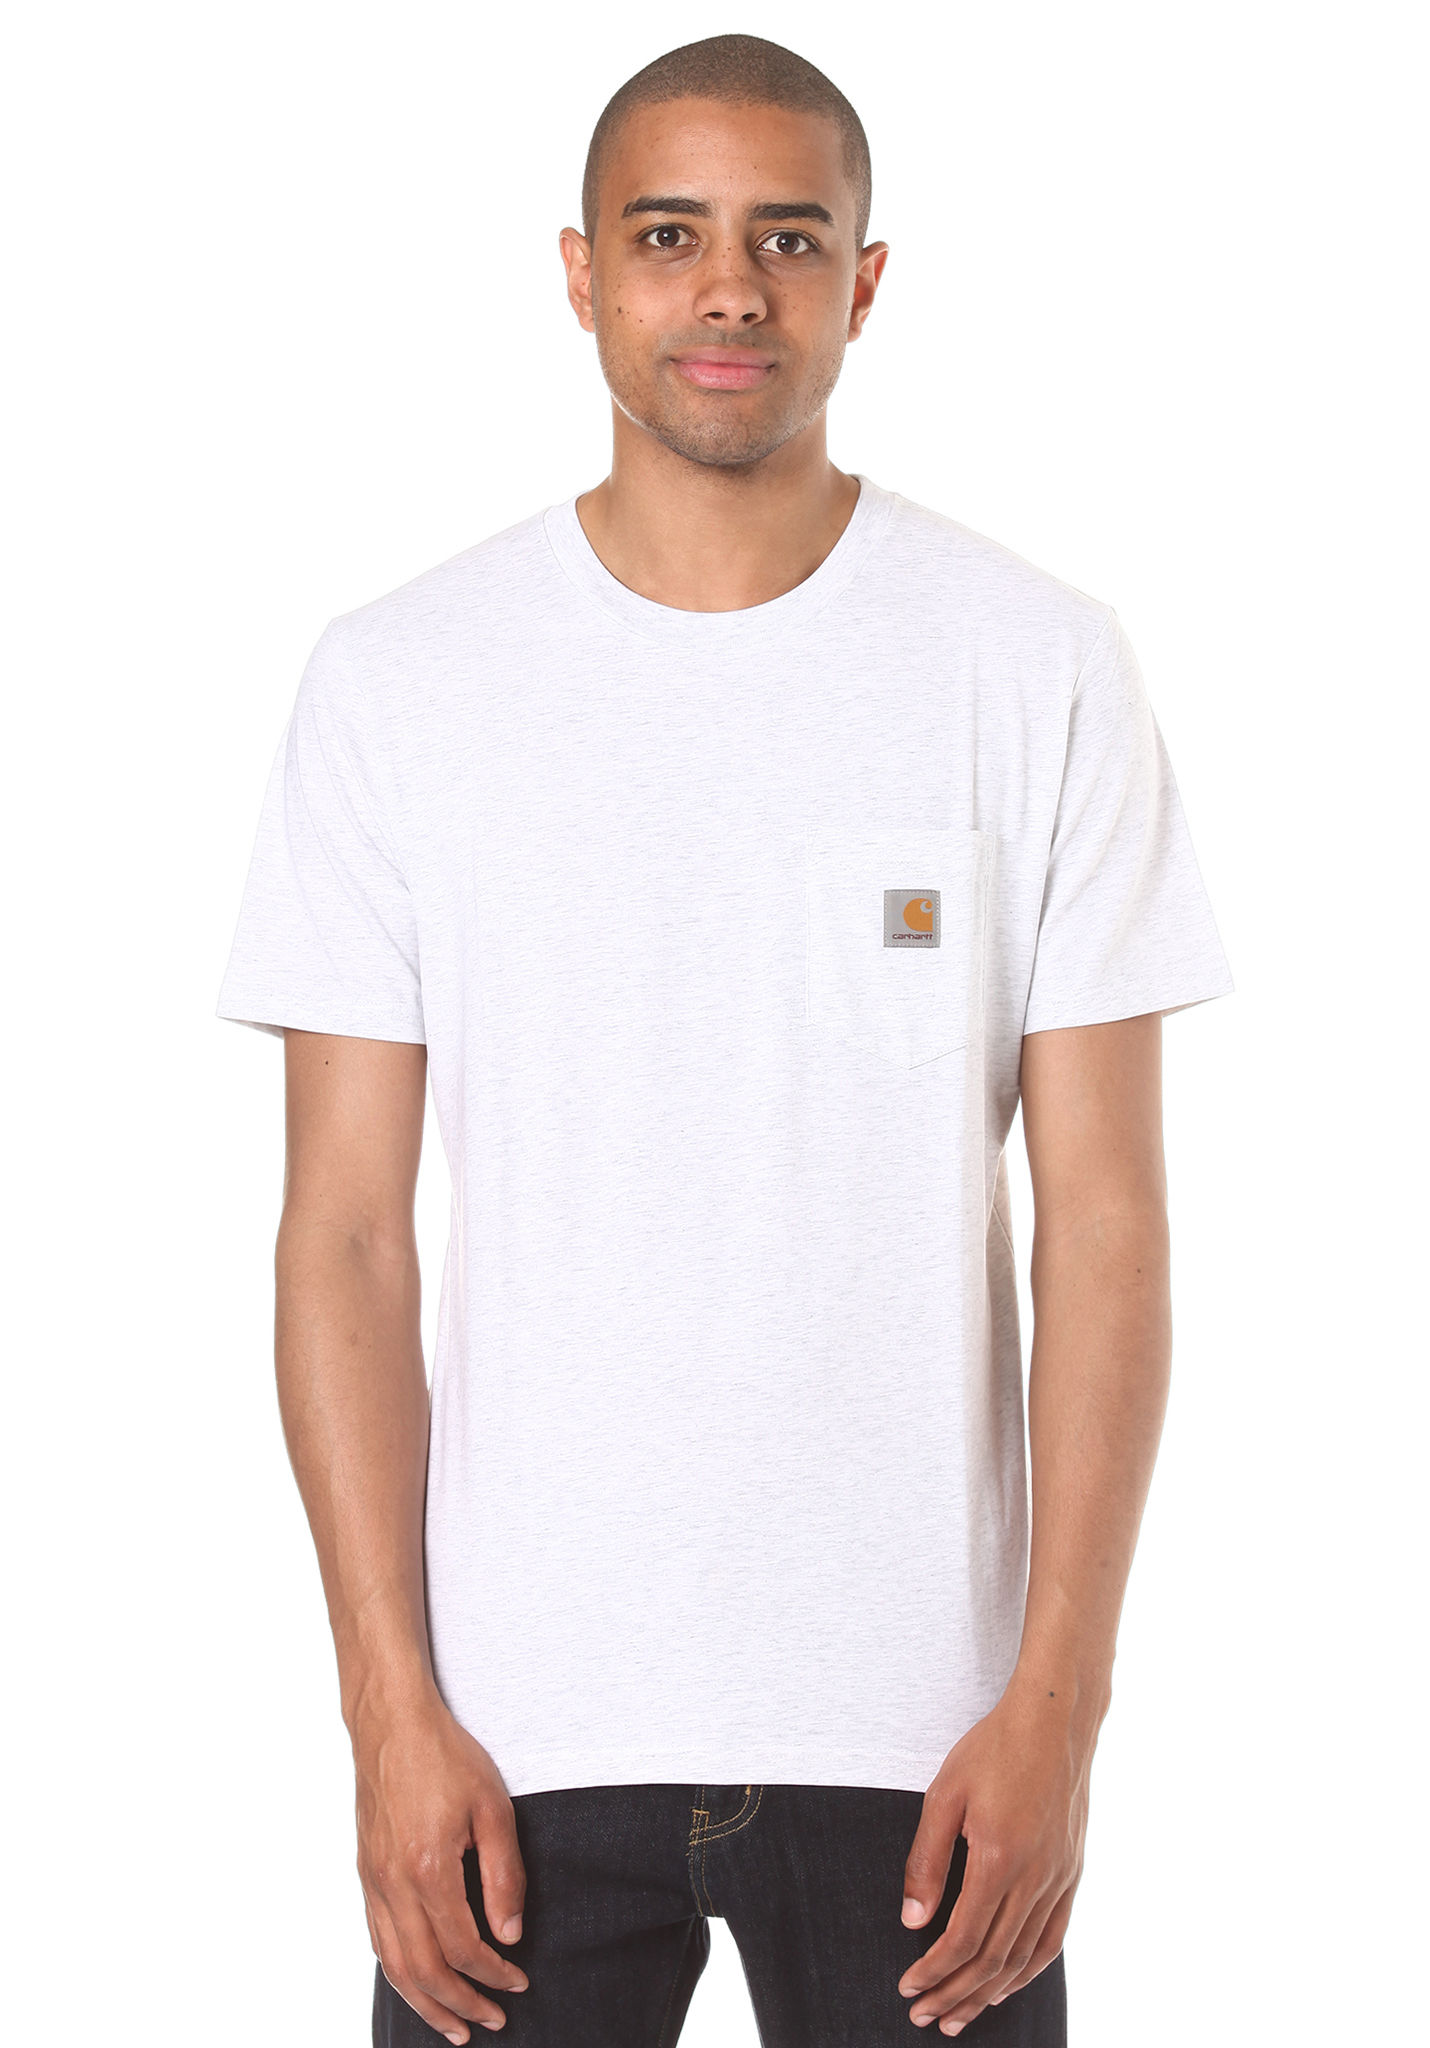 e7d582162a Where To Buy Carhartt Shirts Near Me | Saddha